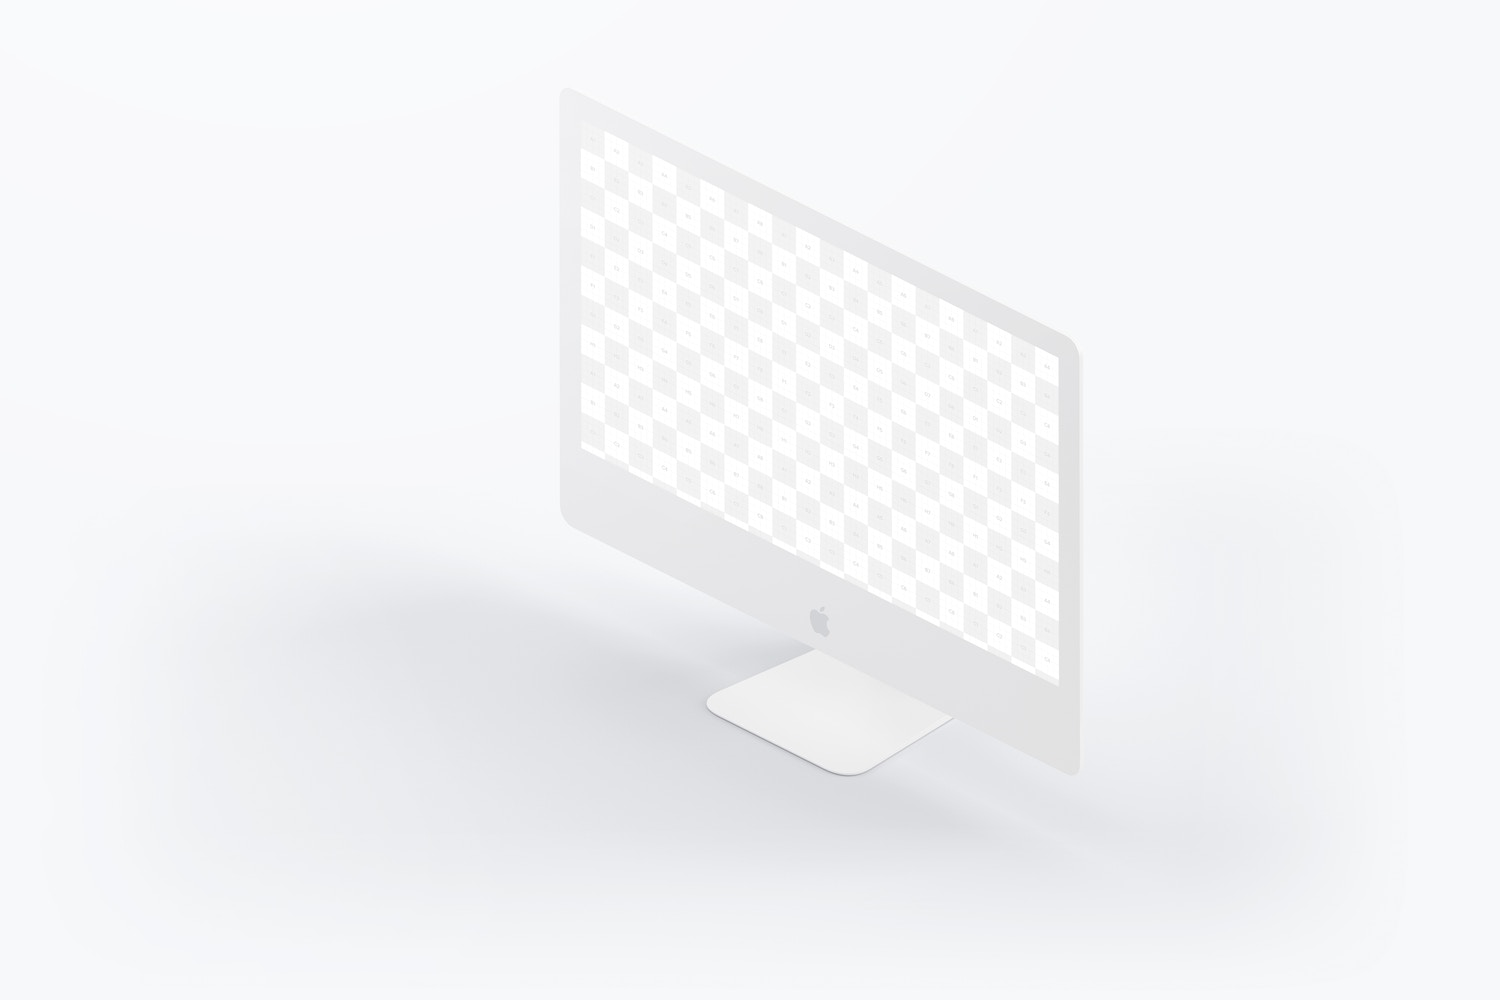 "Clay iMac 27"" Mockup, Isometric Right View (2) by Original Mockups on Original Mockups"